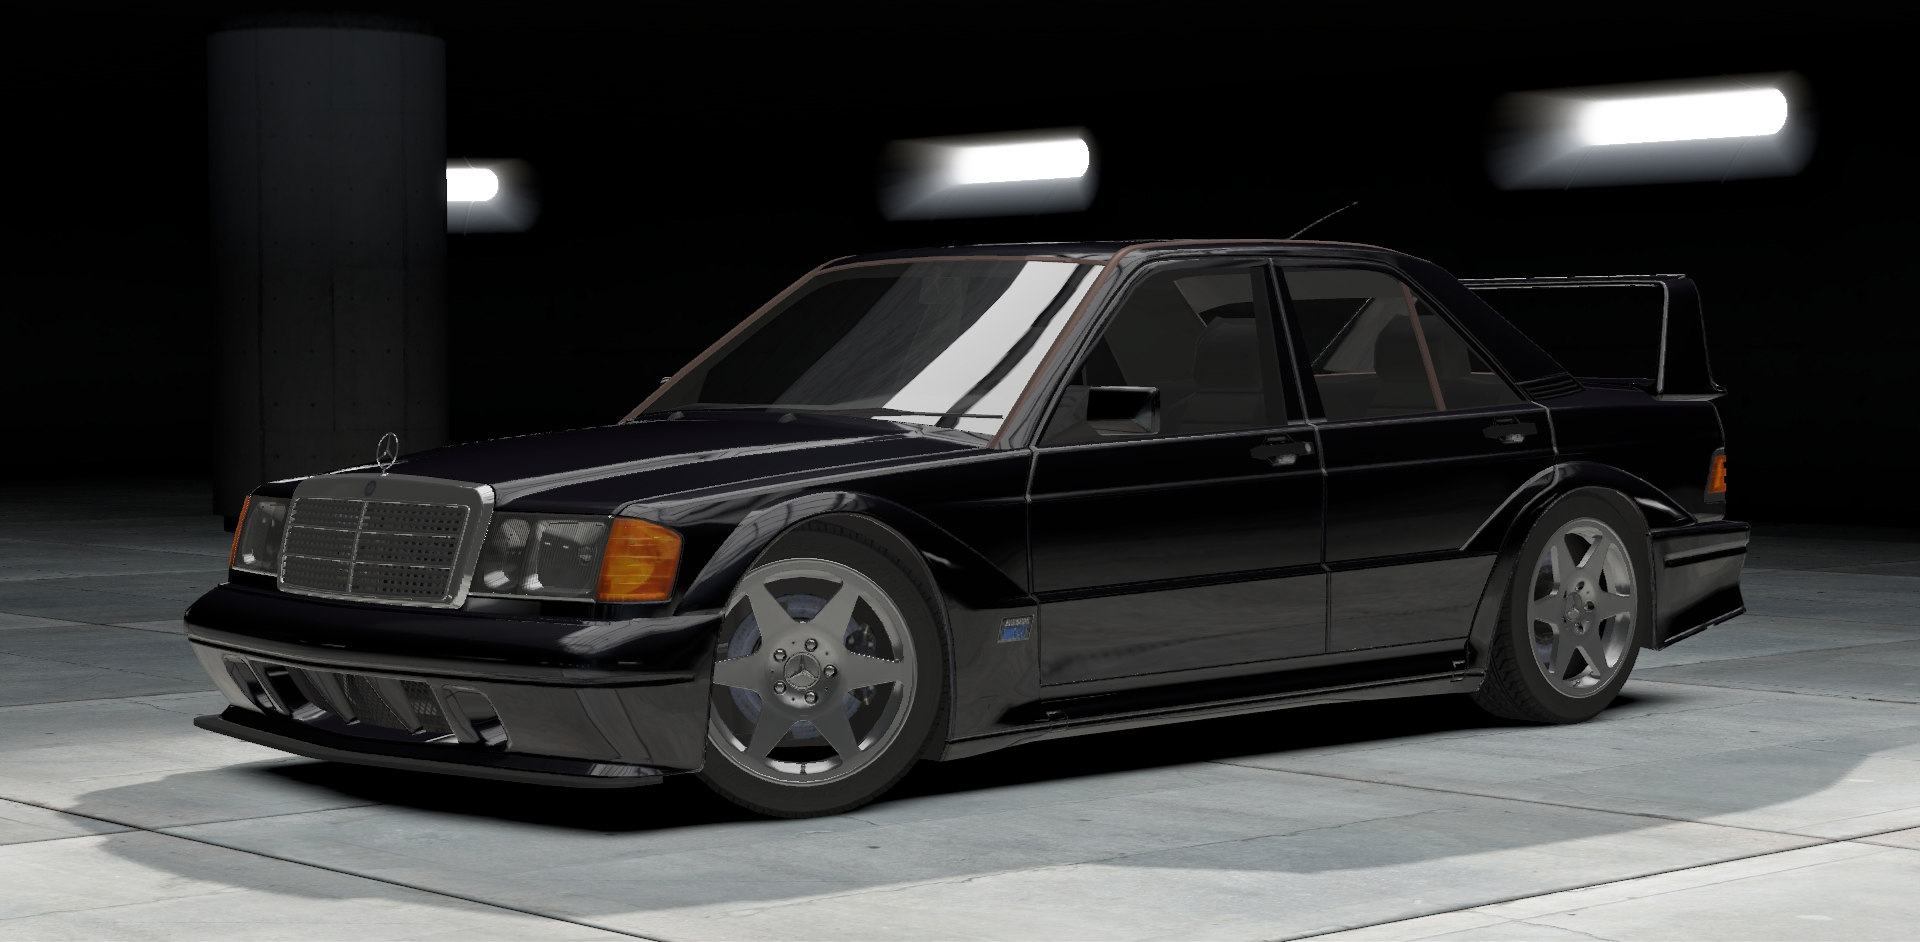 Mercedes benz 190e 2 5 16 evolution 2 need for speed for Mercedes benz 190e 2 5 16 evolution ii for sale